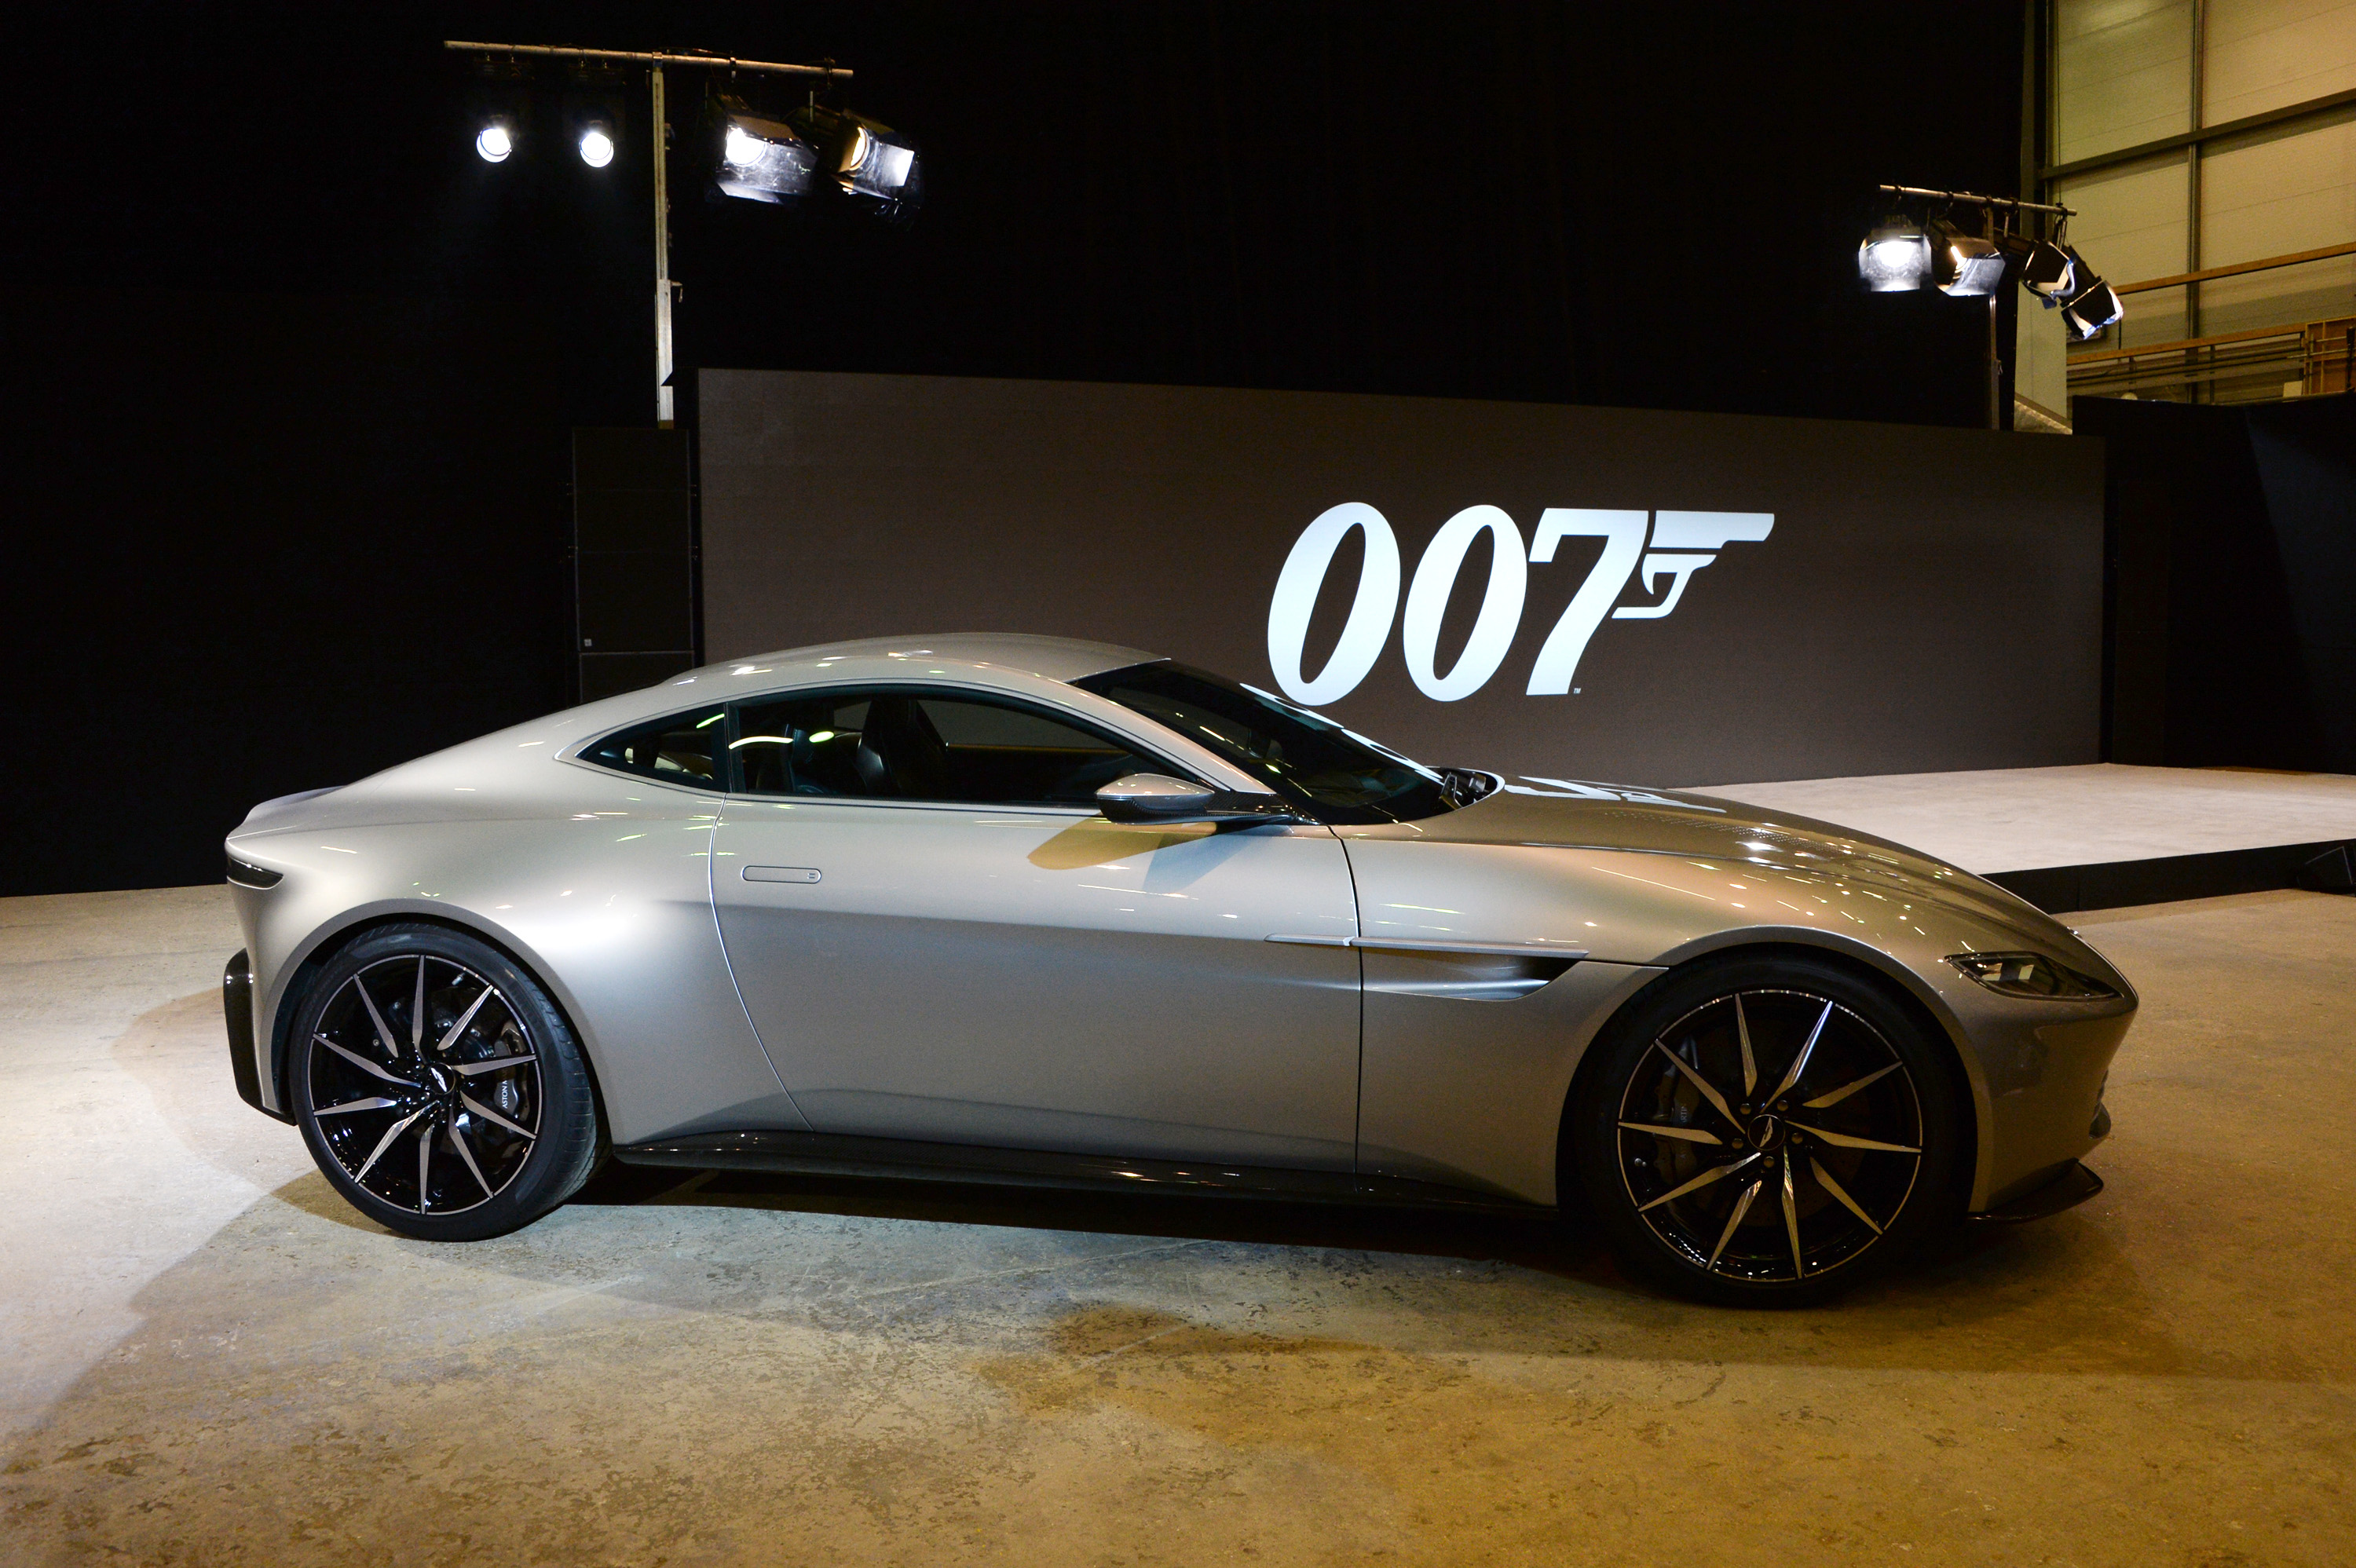 An Aston Martin DB10, designed for the 2015 James Bond film Spectre